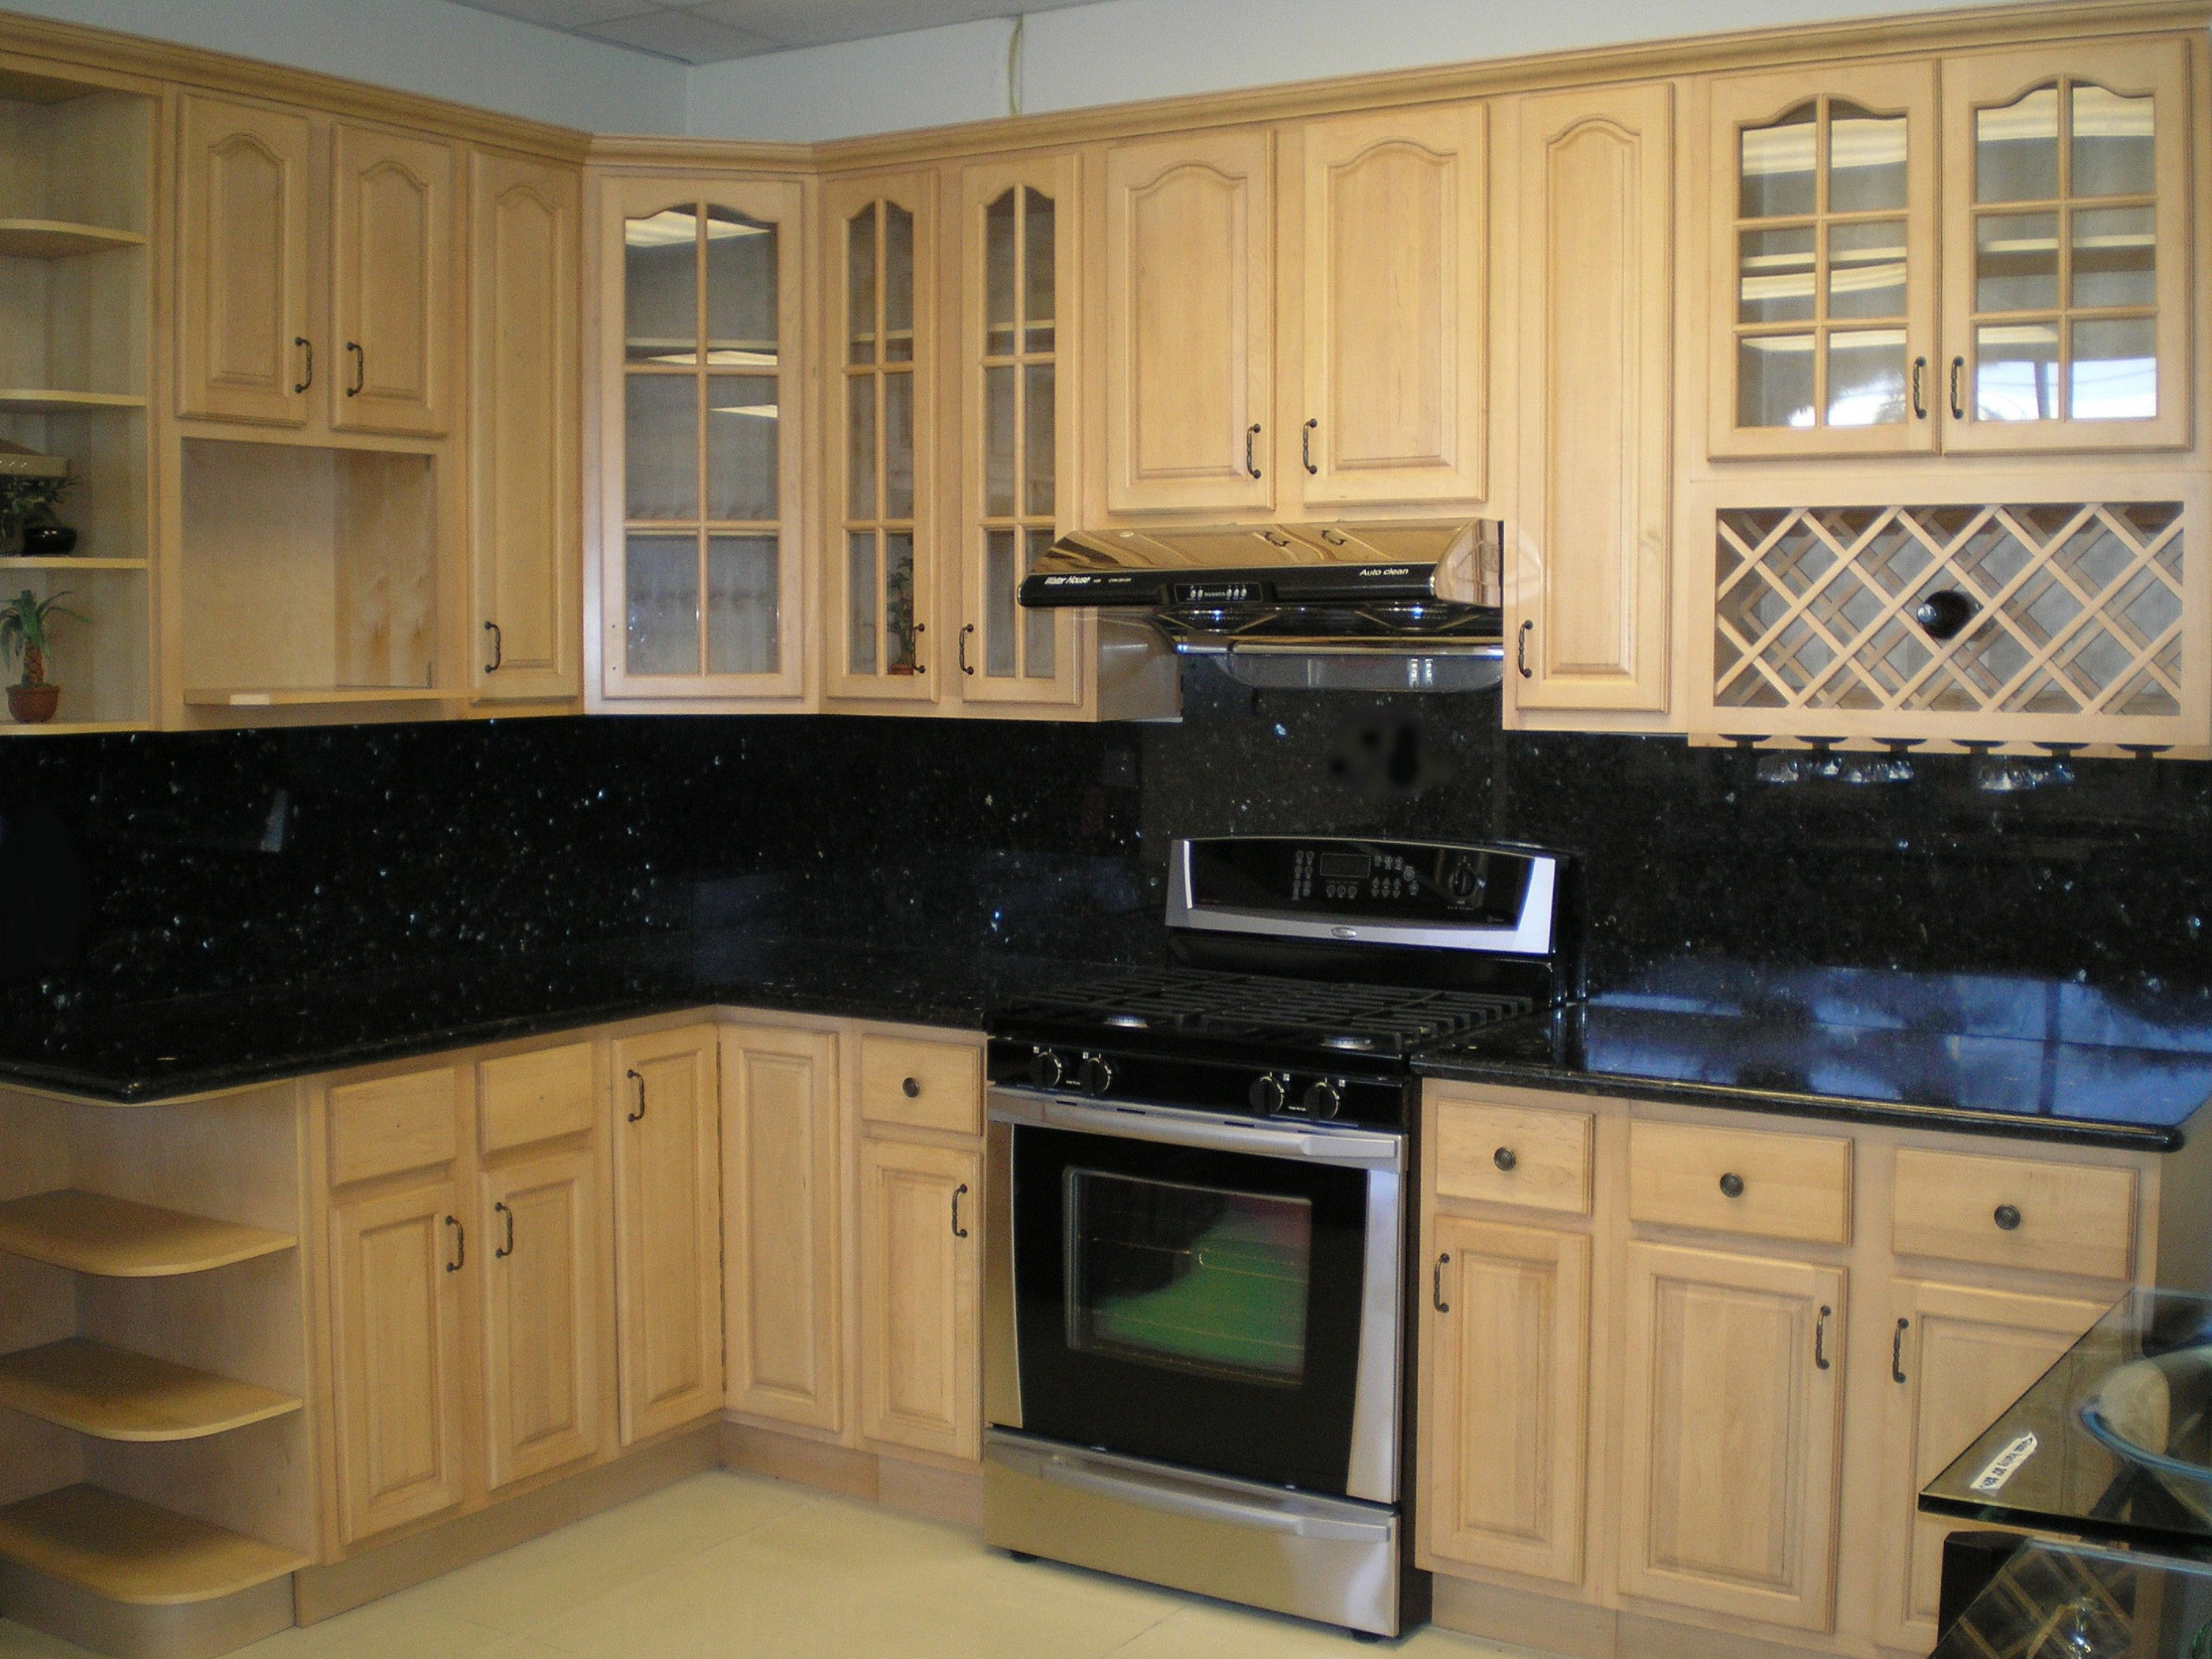 Black Kitchen Wall Cabinets With Glass Doors